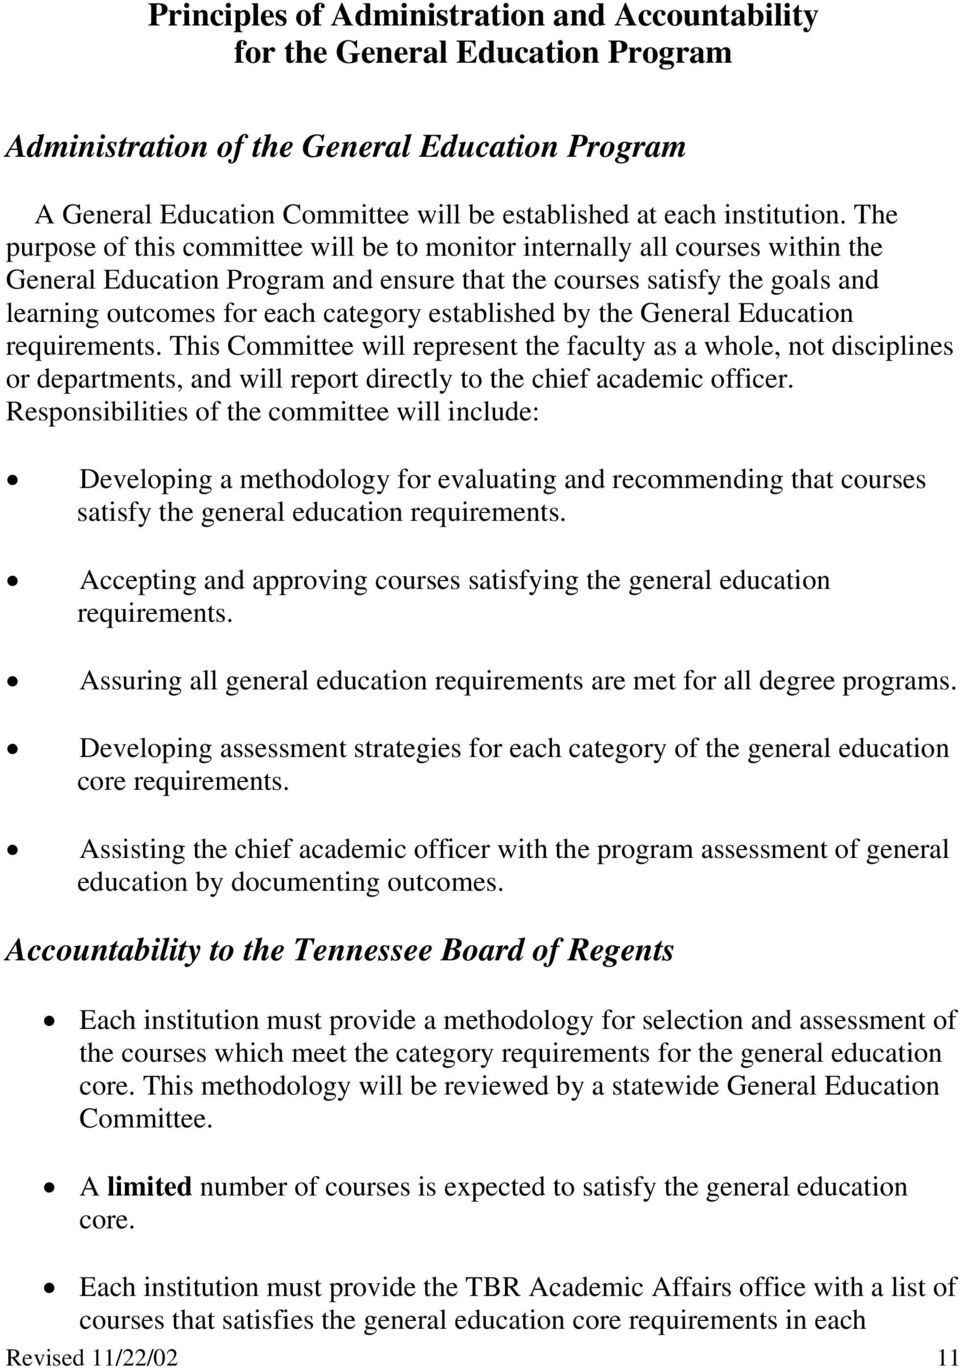 established by the General Education requirements. This Committee will represent the faculty as a whole, not disciplines or departments, and will report directly to the chief academic officer.